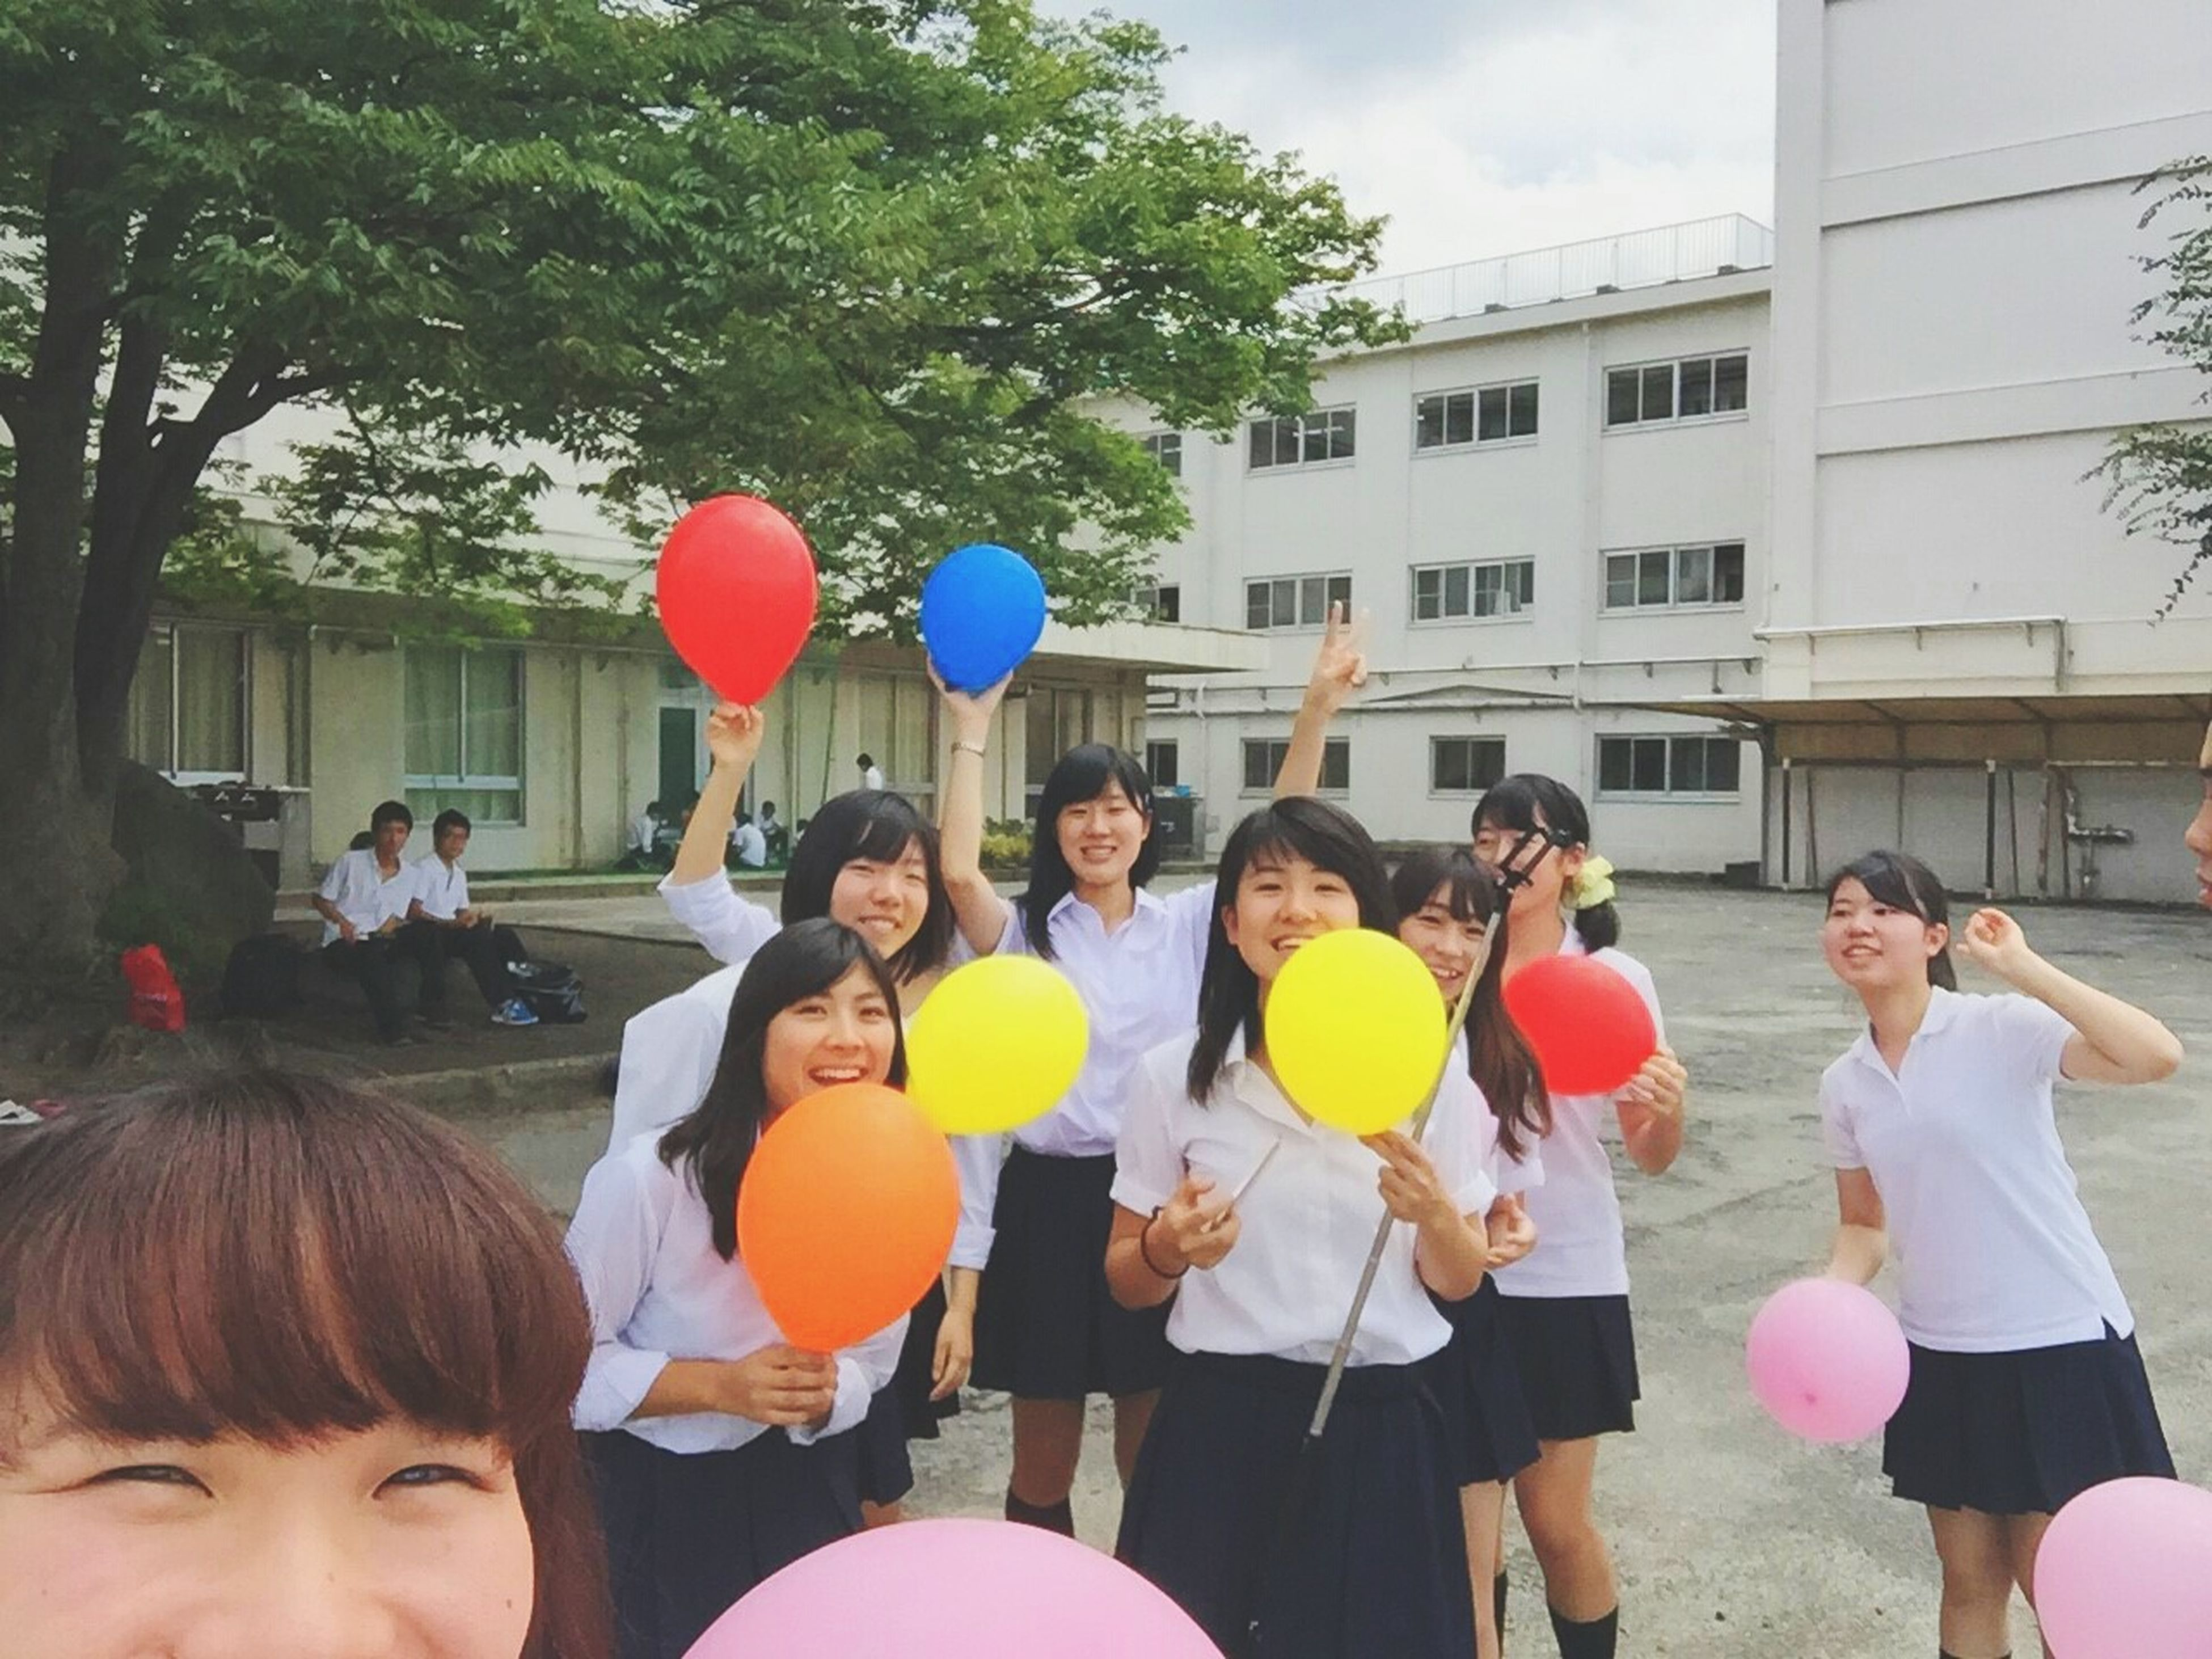 lifestyles, leisure activity, childhood, large group of people, balloon, celebration, enjoyment, girls, togetherness, person, fun, multi colored, tree, boys, playing, elementary age, building exterior, casual clothing, men